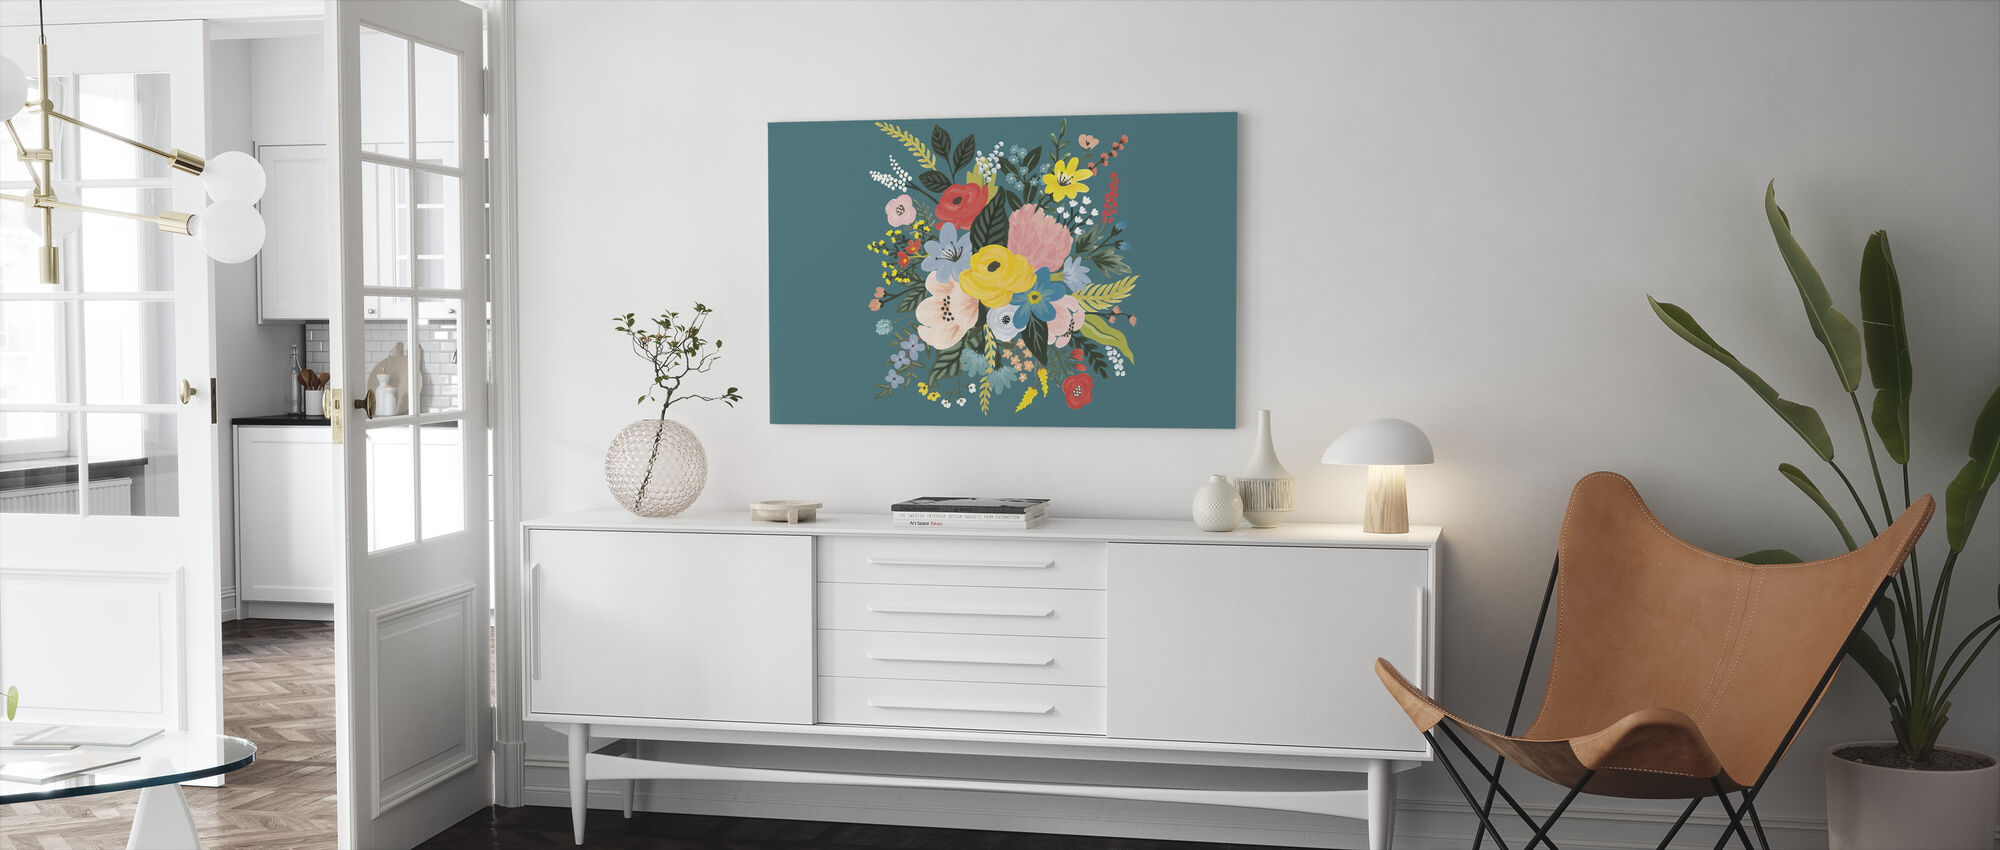 Wild Garden VII - Canvas print - Living Room